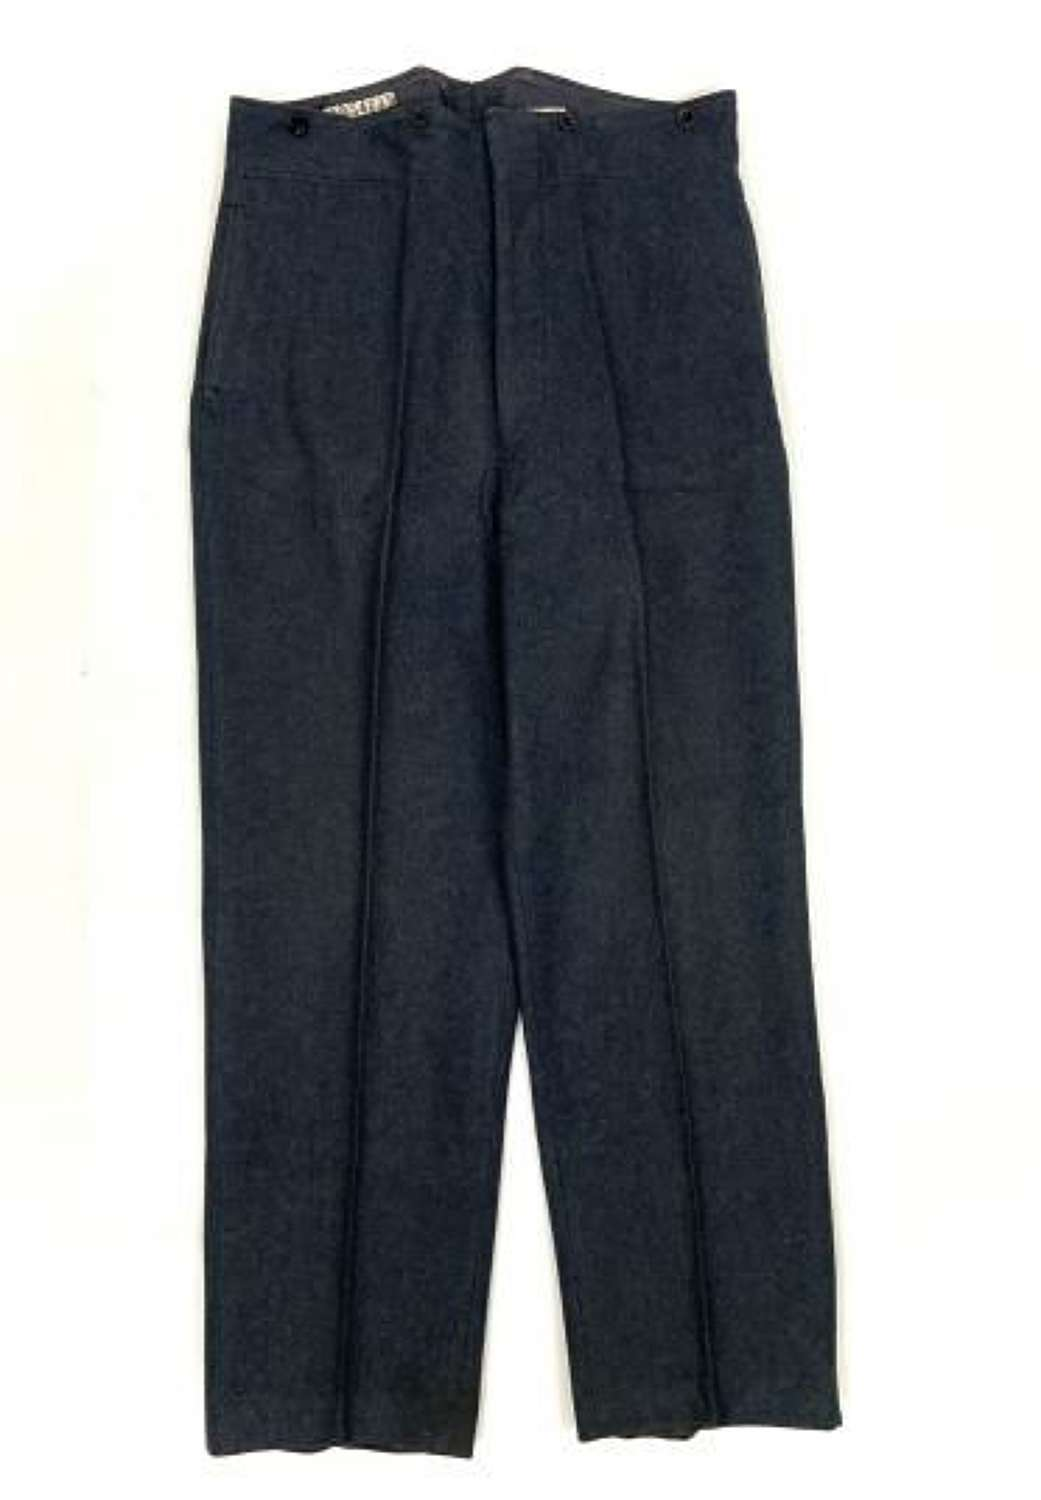 Original 1947 Dated RAF OA Trousers - Size 31